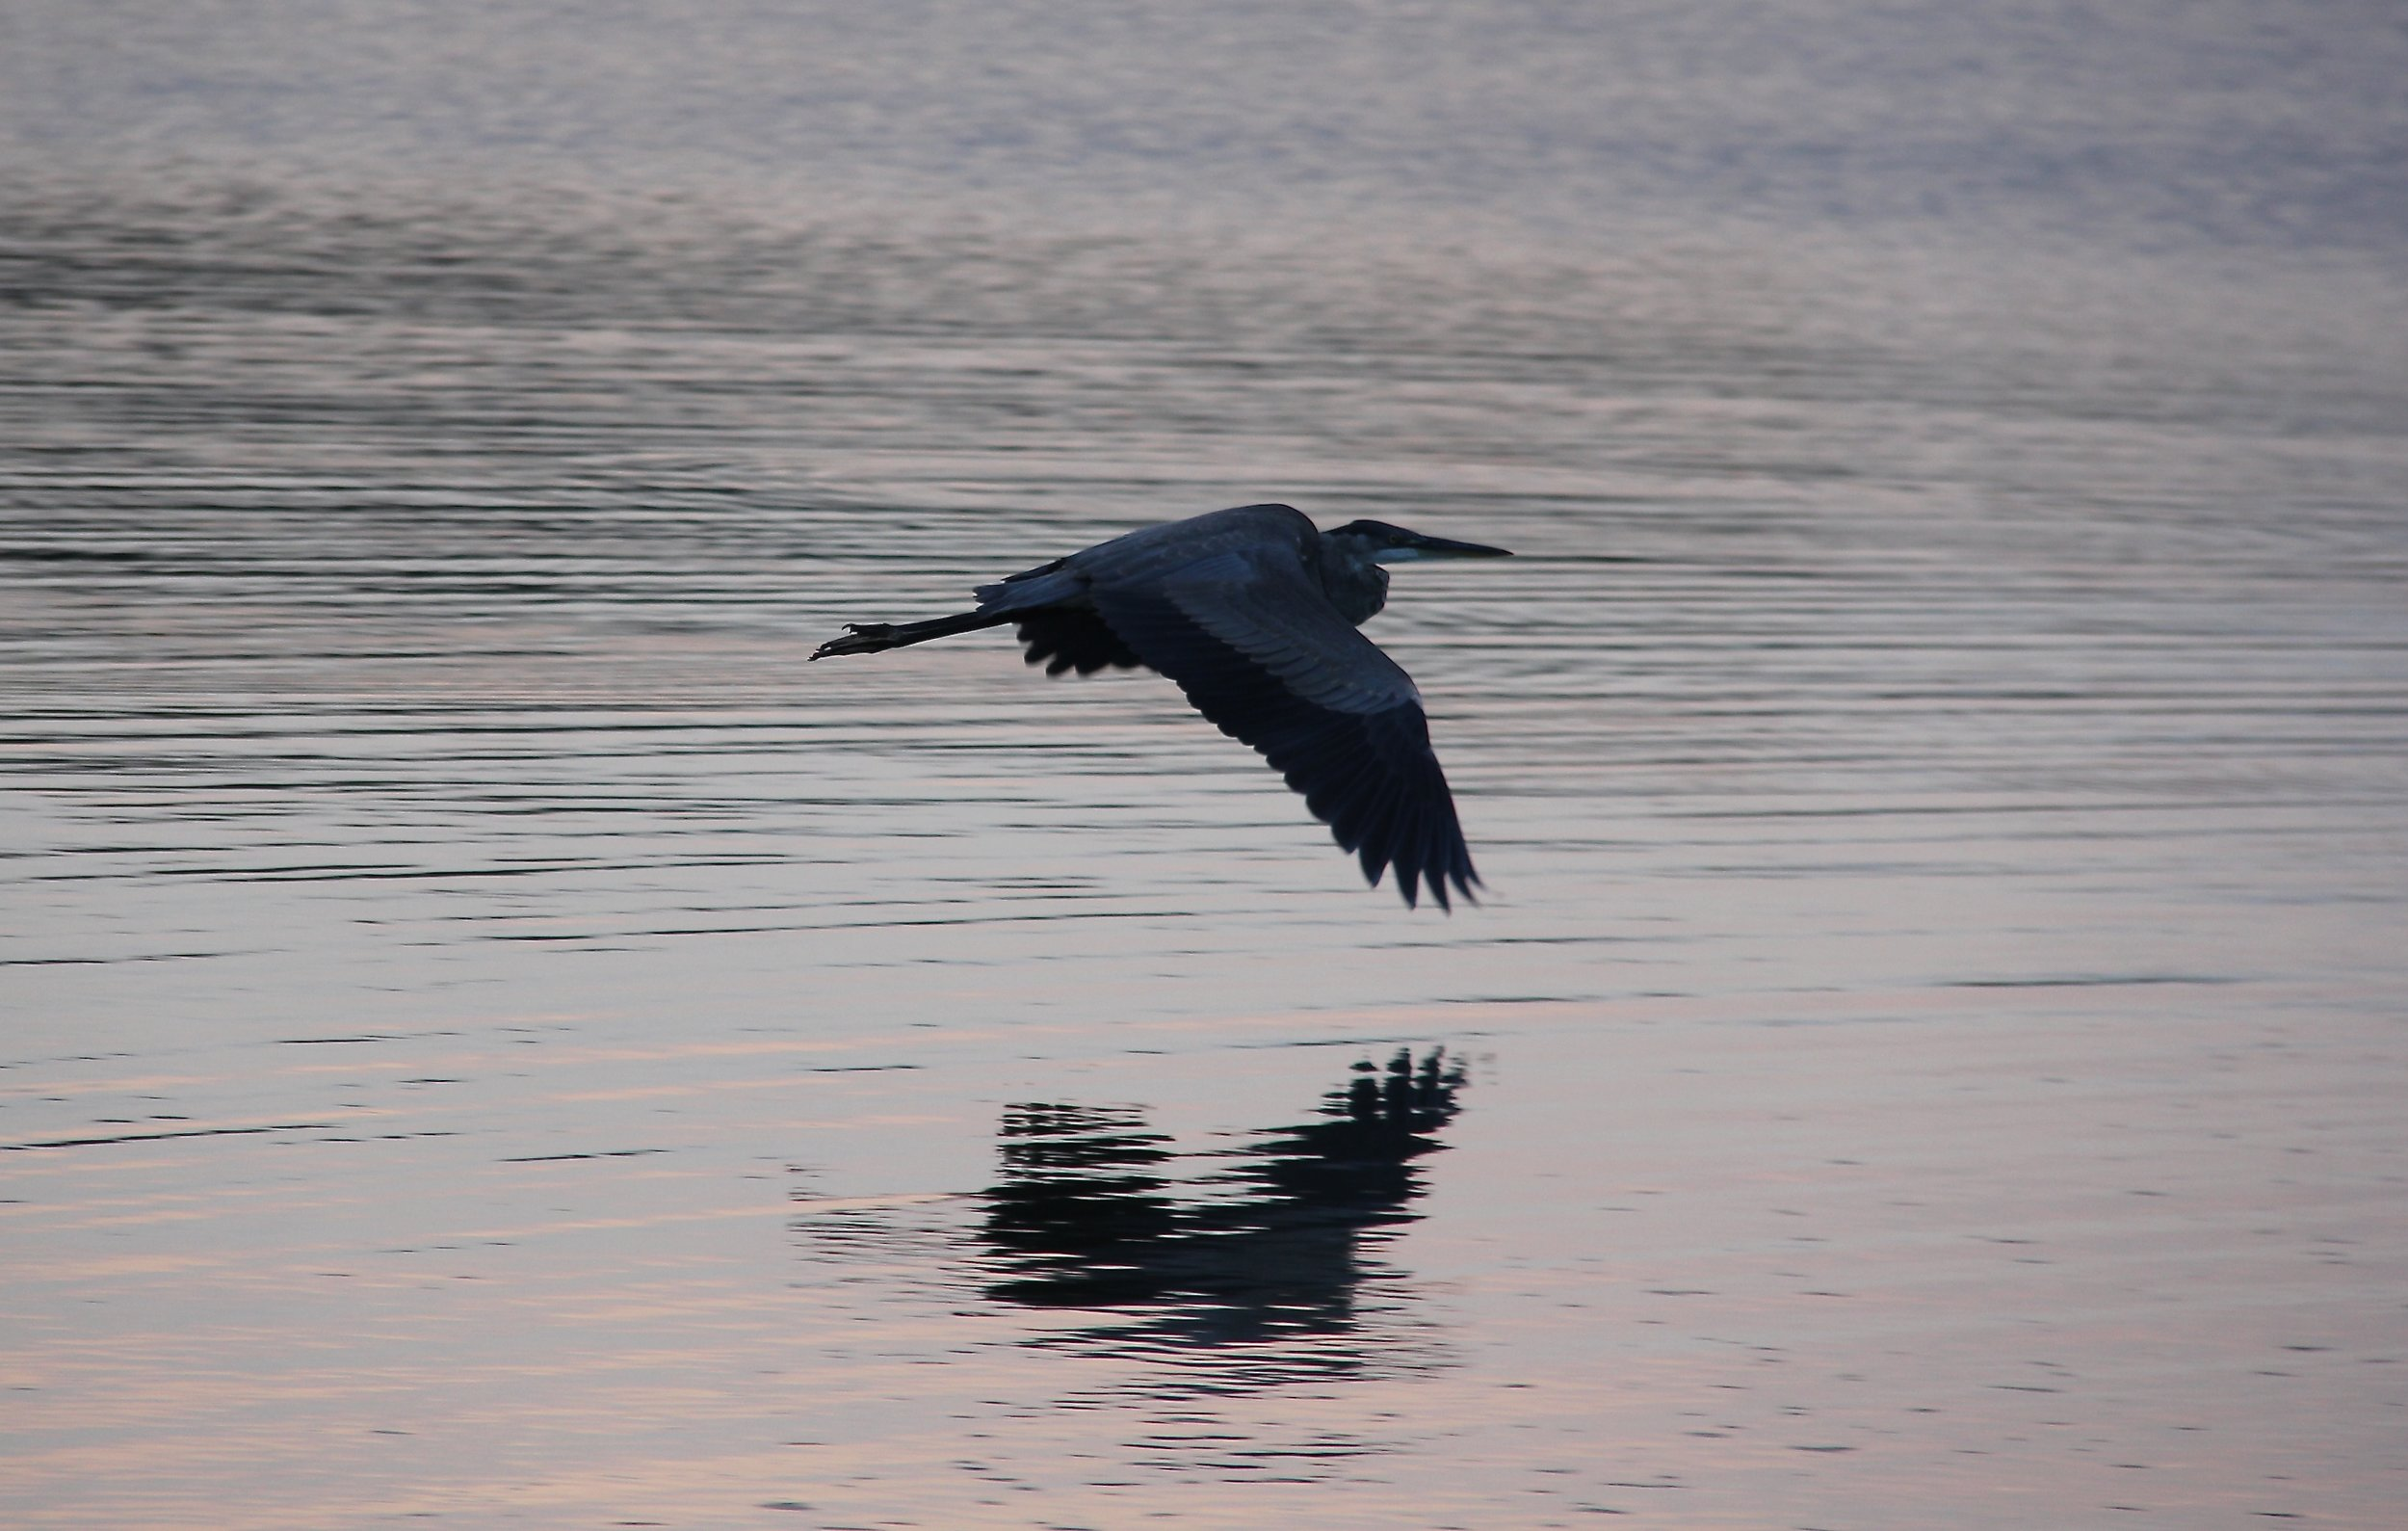 Great Blue Heron - most common here in winter. It does not nest on Long Island. Although, it does nest in CT, Westchester, NY, and NJ. Why not Long Island is a mystery.